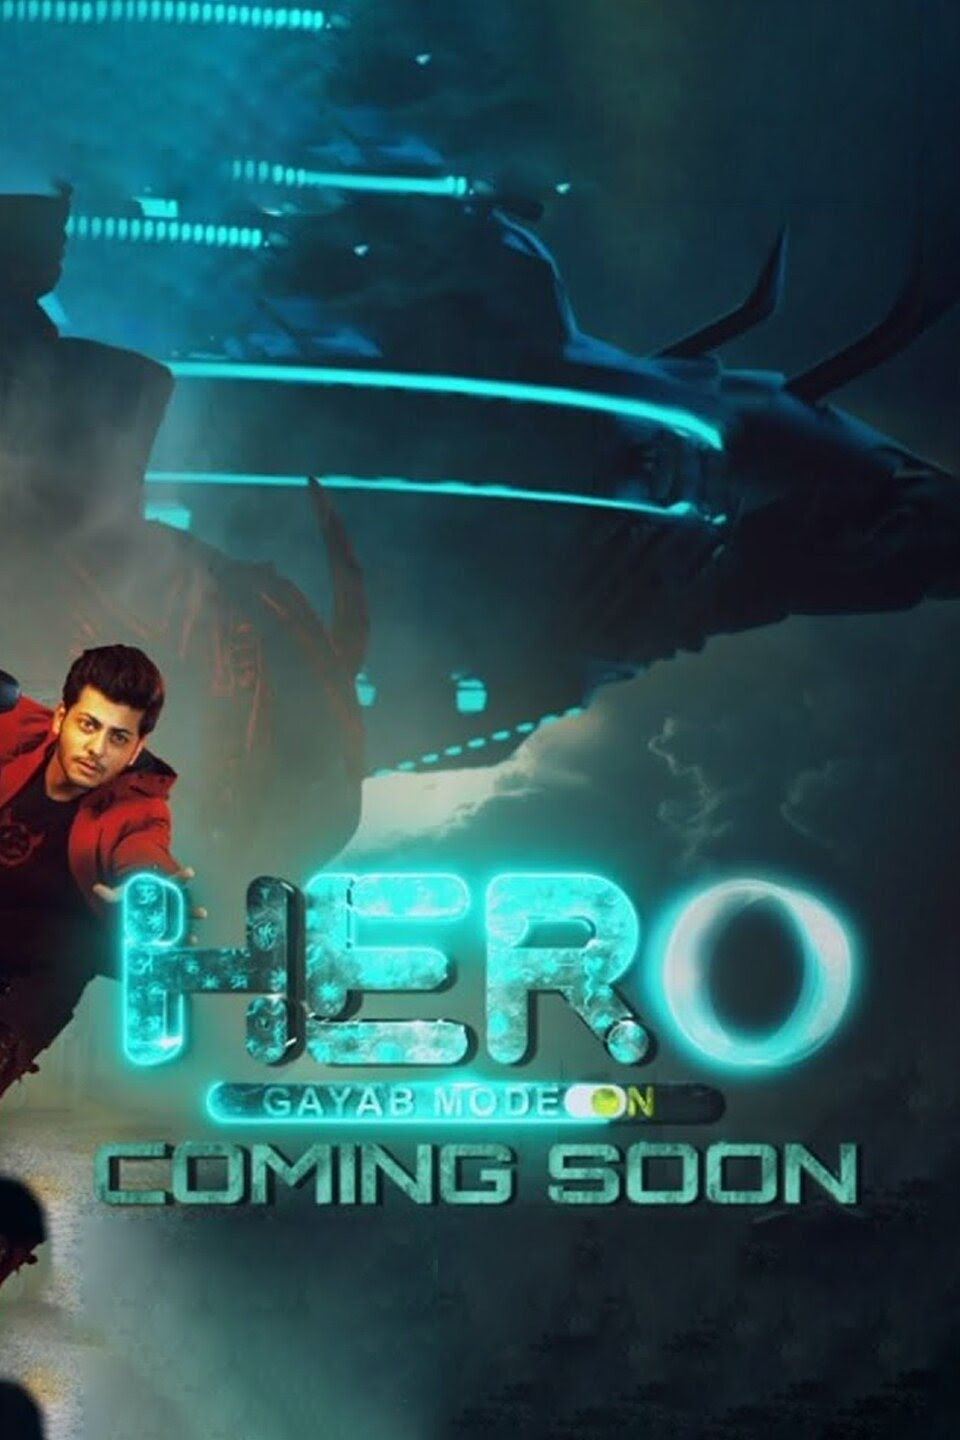 Hero – Gayab Mode On